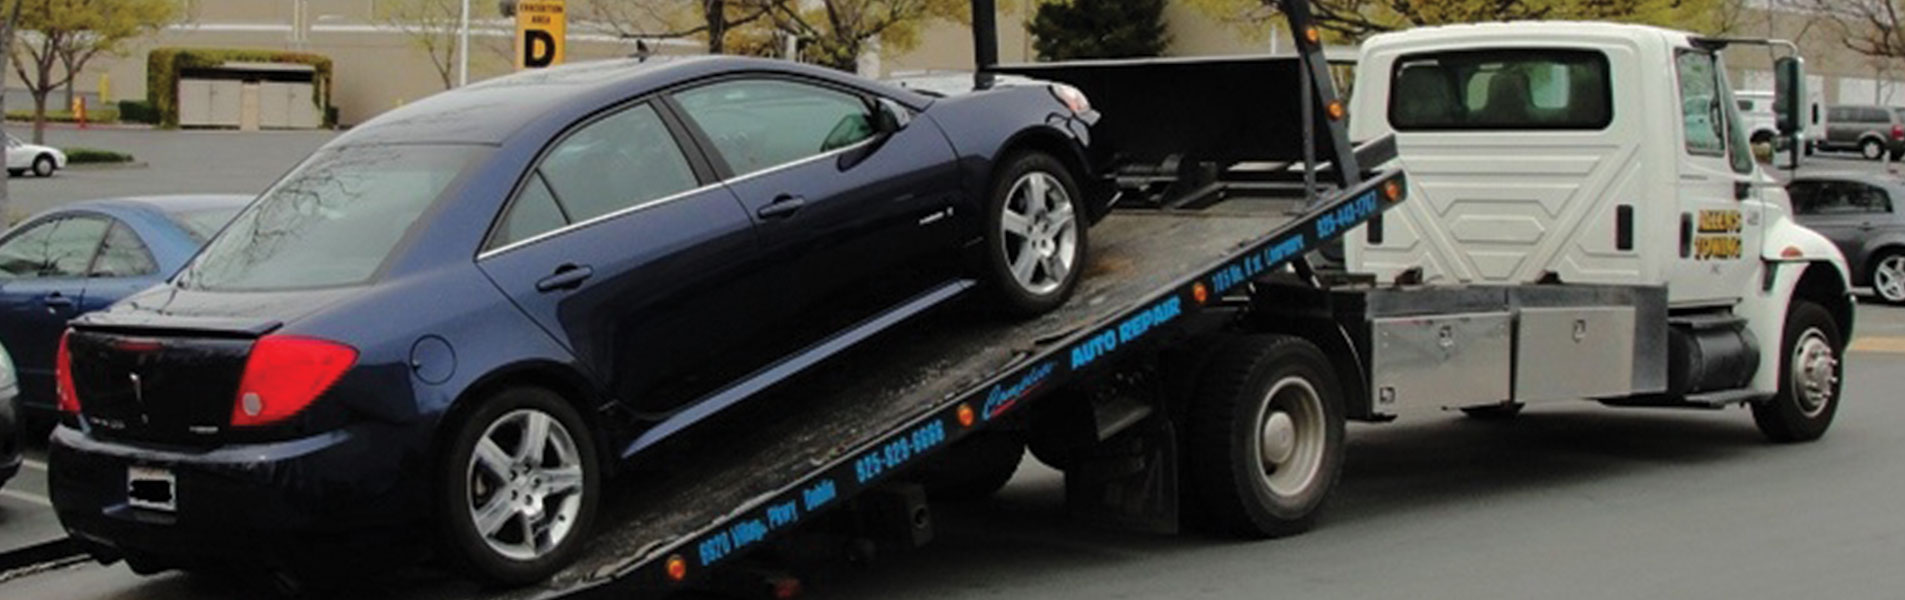 Videos Repossessed Cars For Sale